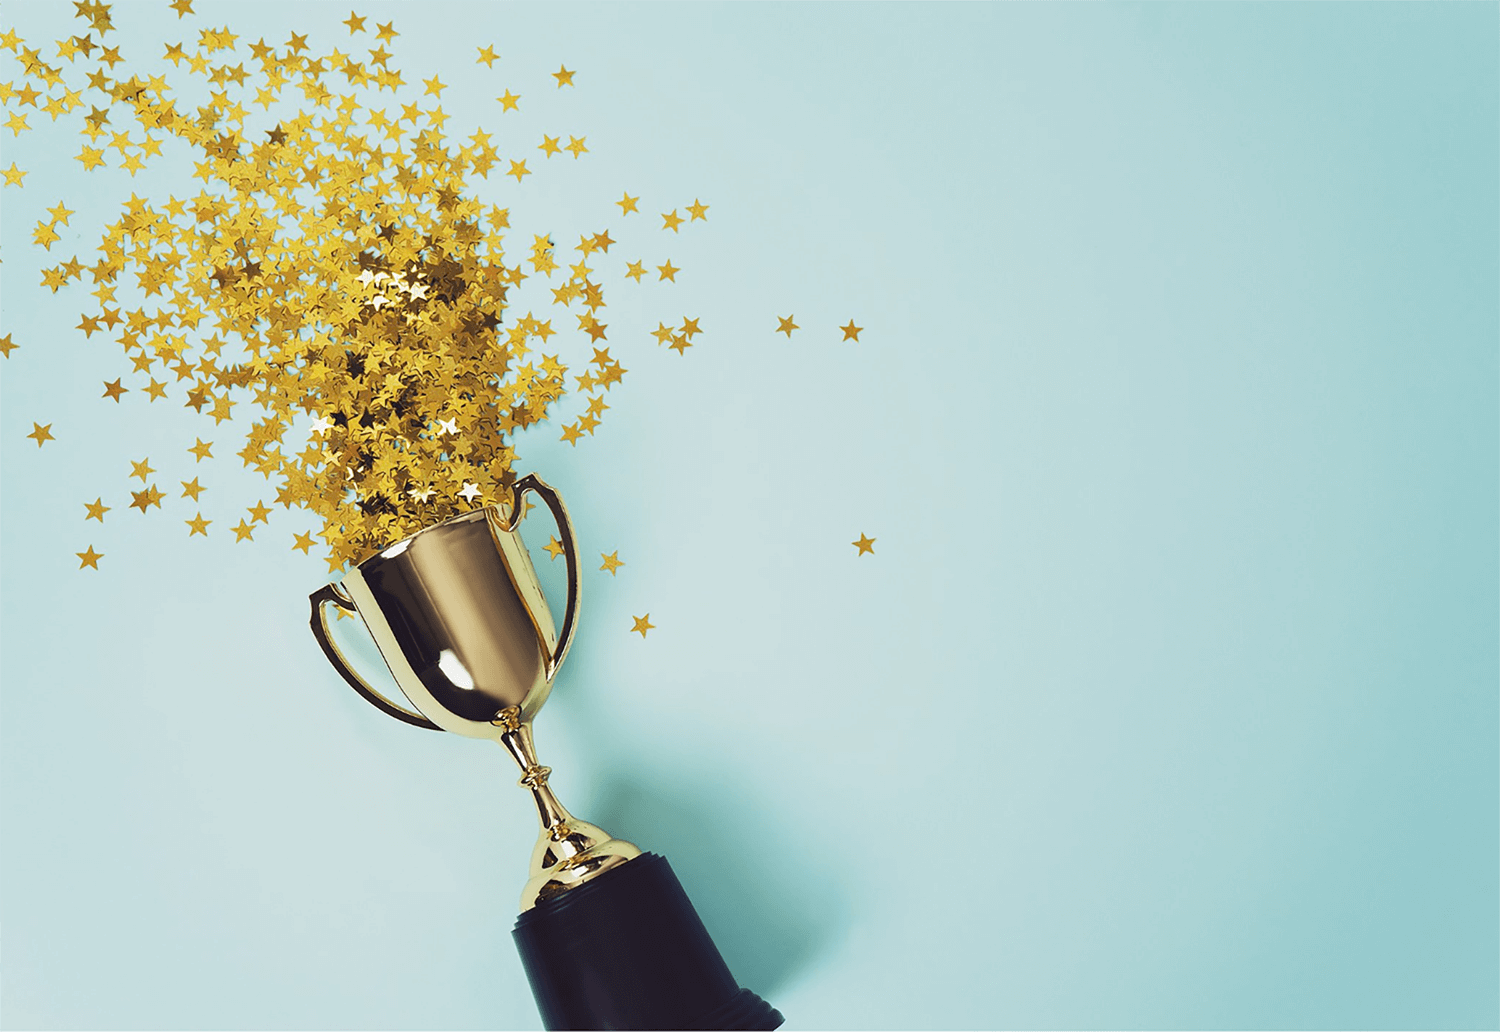 Not all awards are created equal